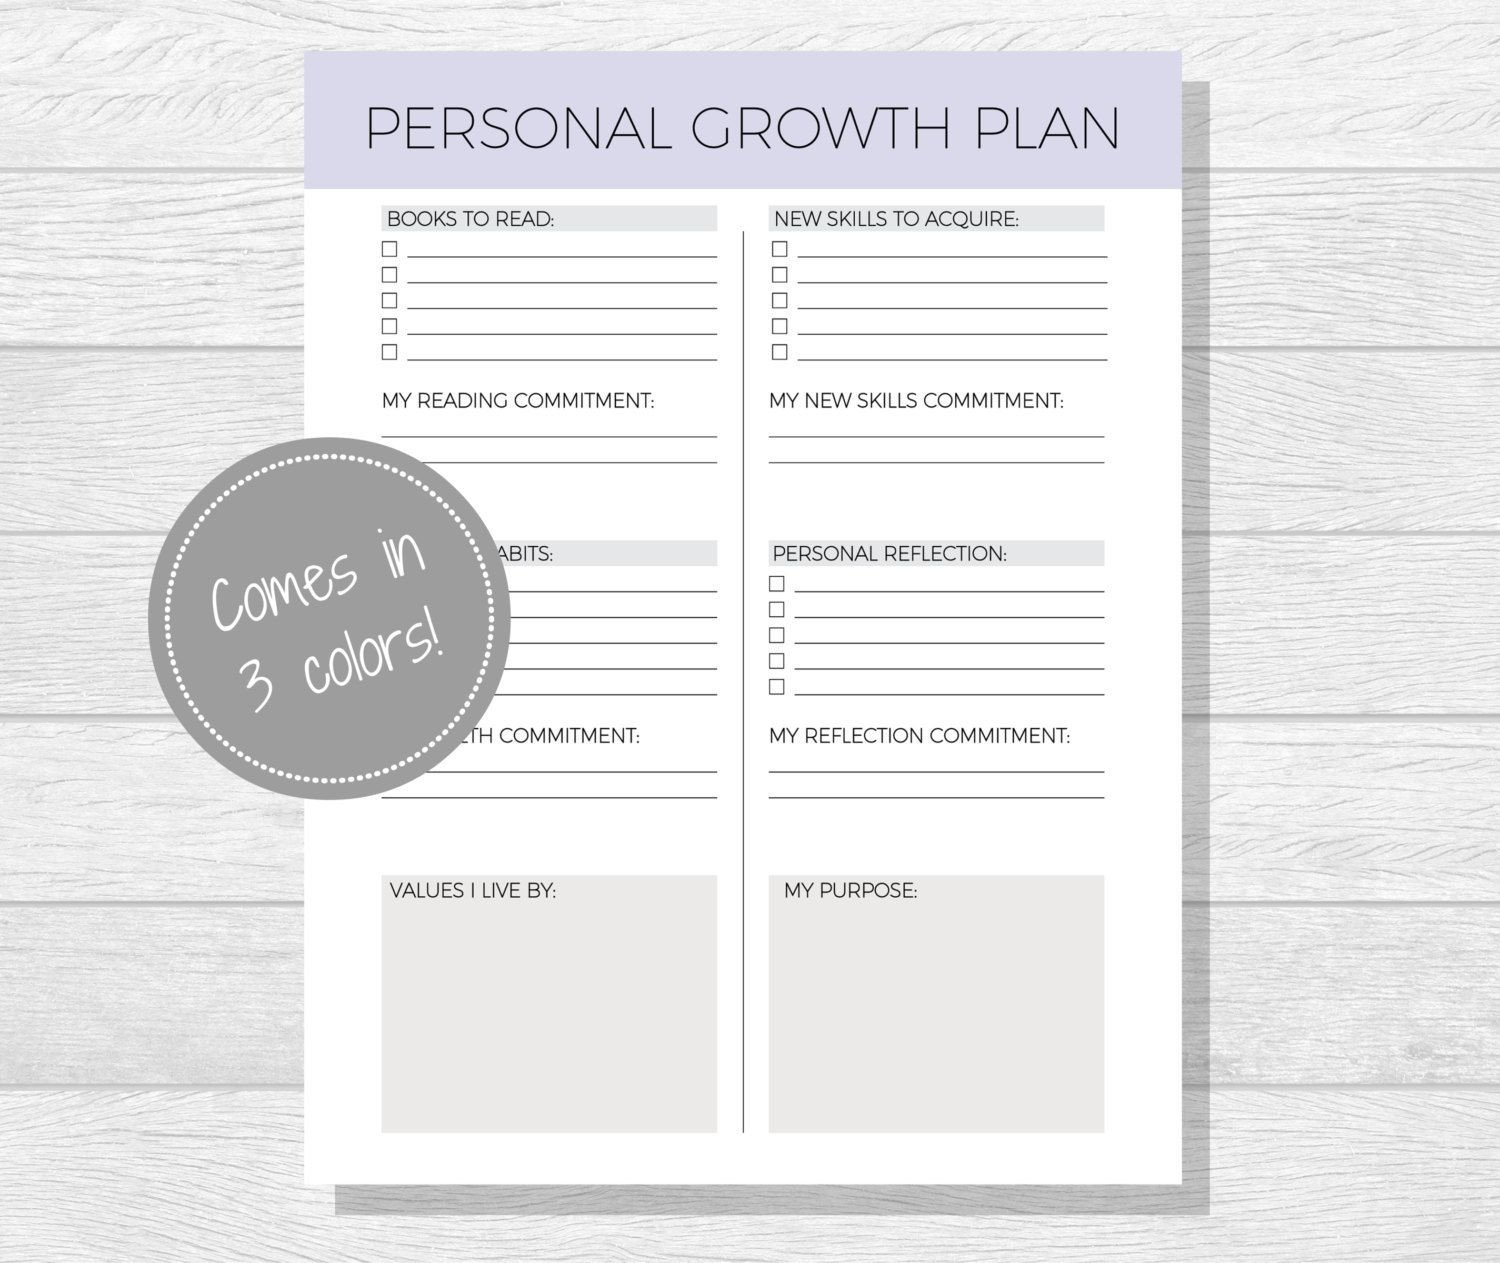 Personal Development Worksheet Personal Growth Plan Printable Personal Development Goal